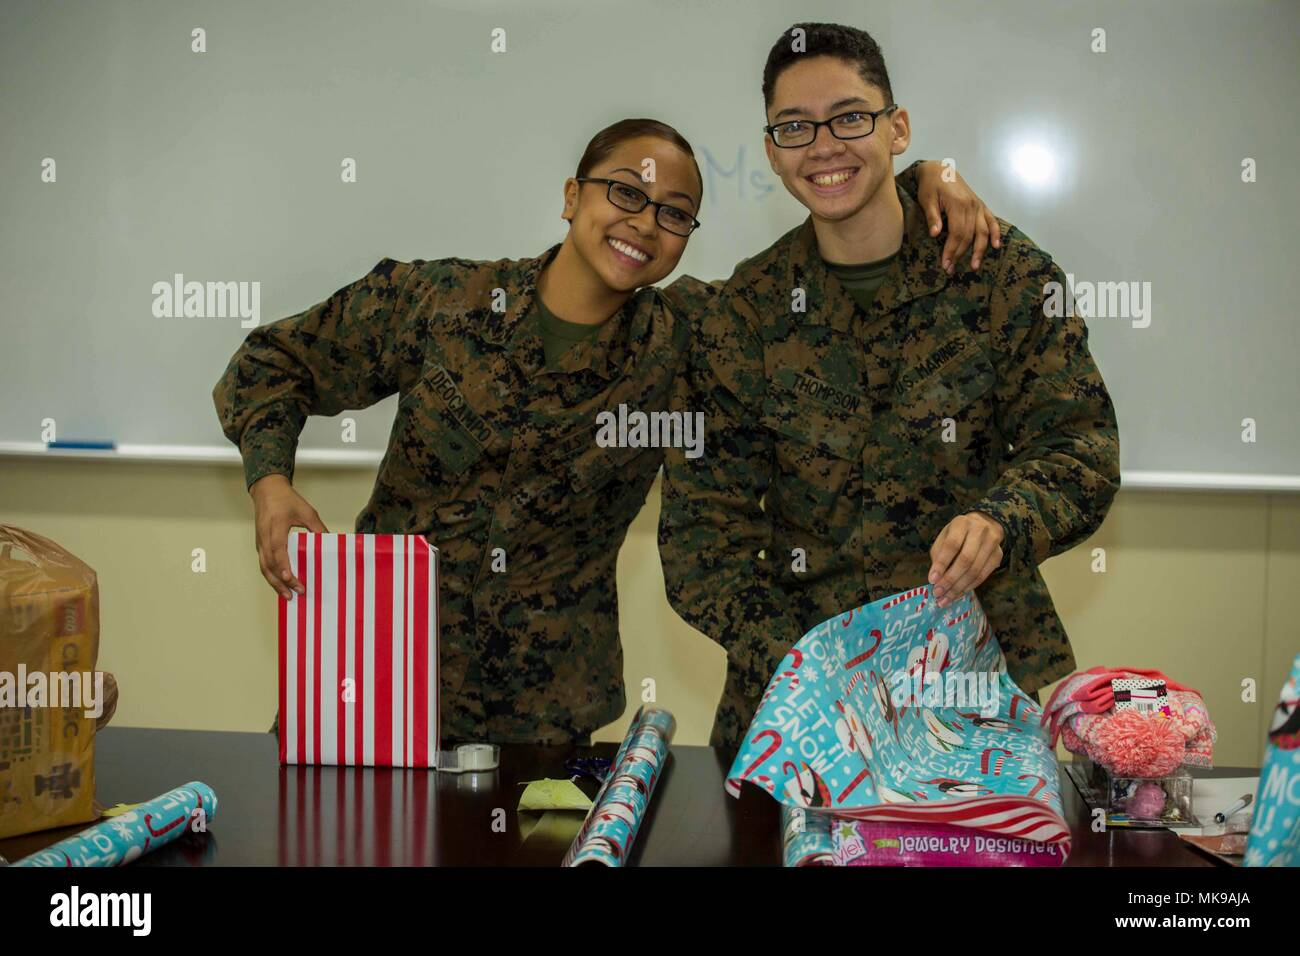 U.S. Marine Corps Lance Cpl. Cyndell Deocampo, left, an aviation ...